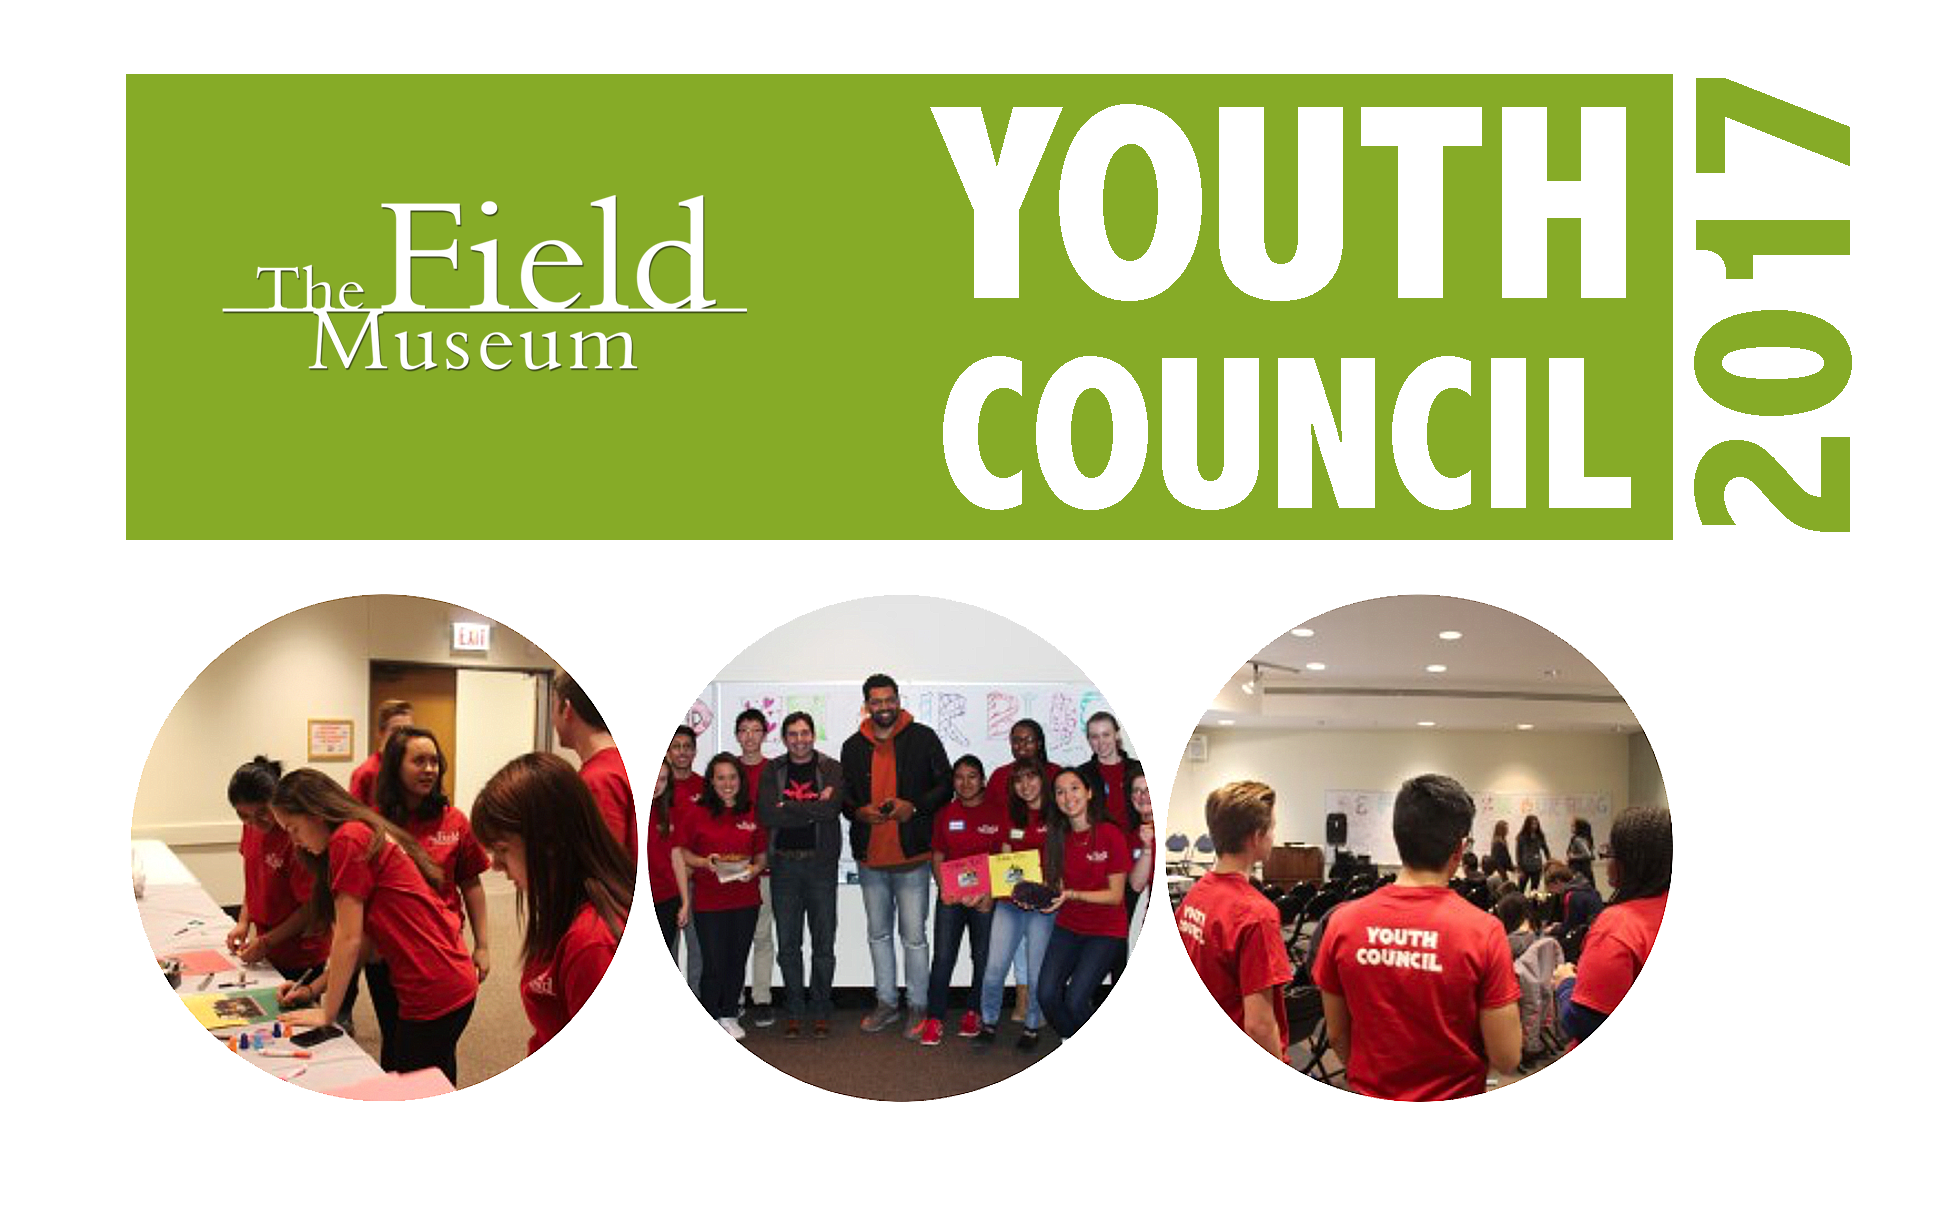 The Field Museum Youth Council